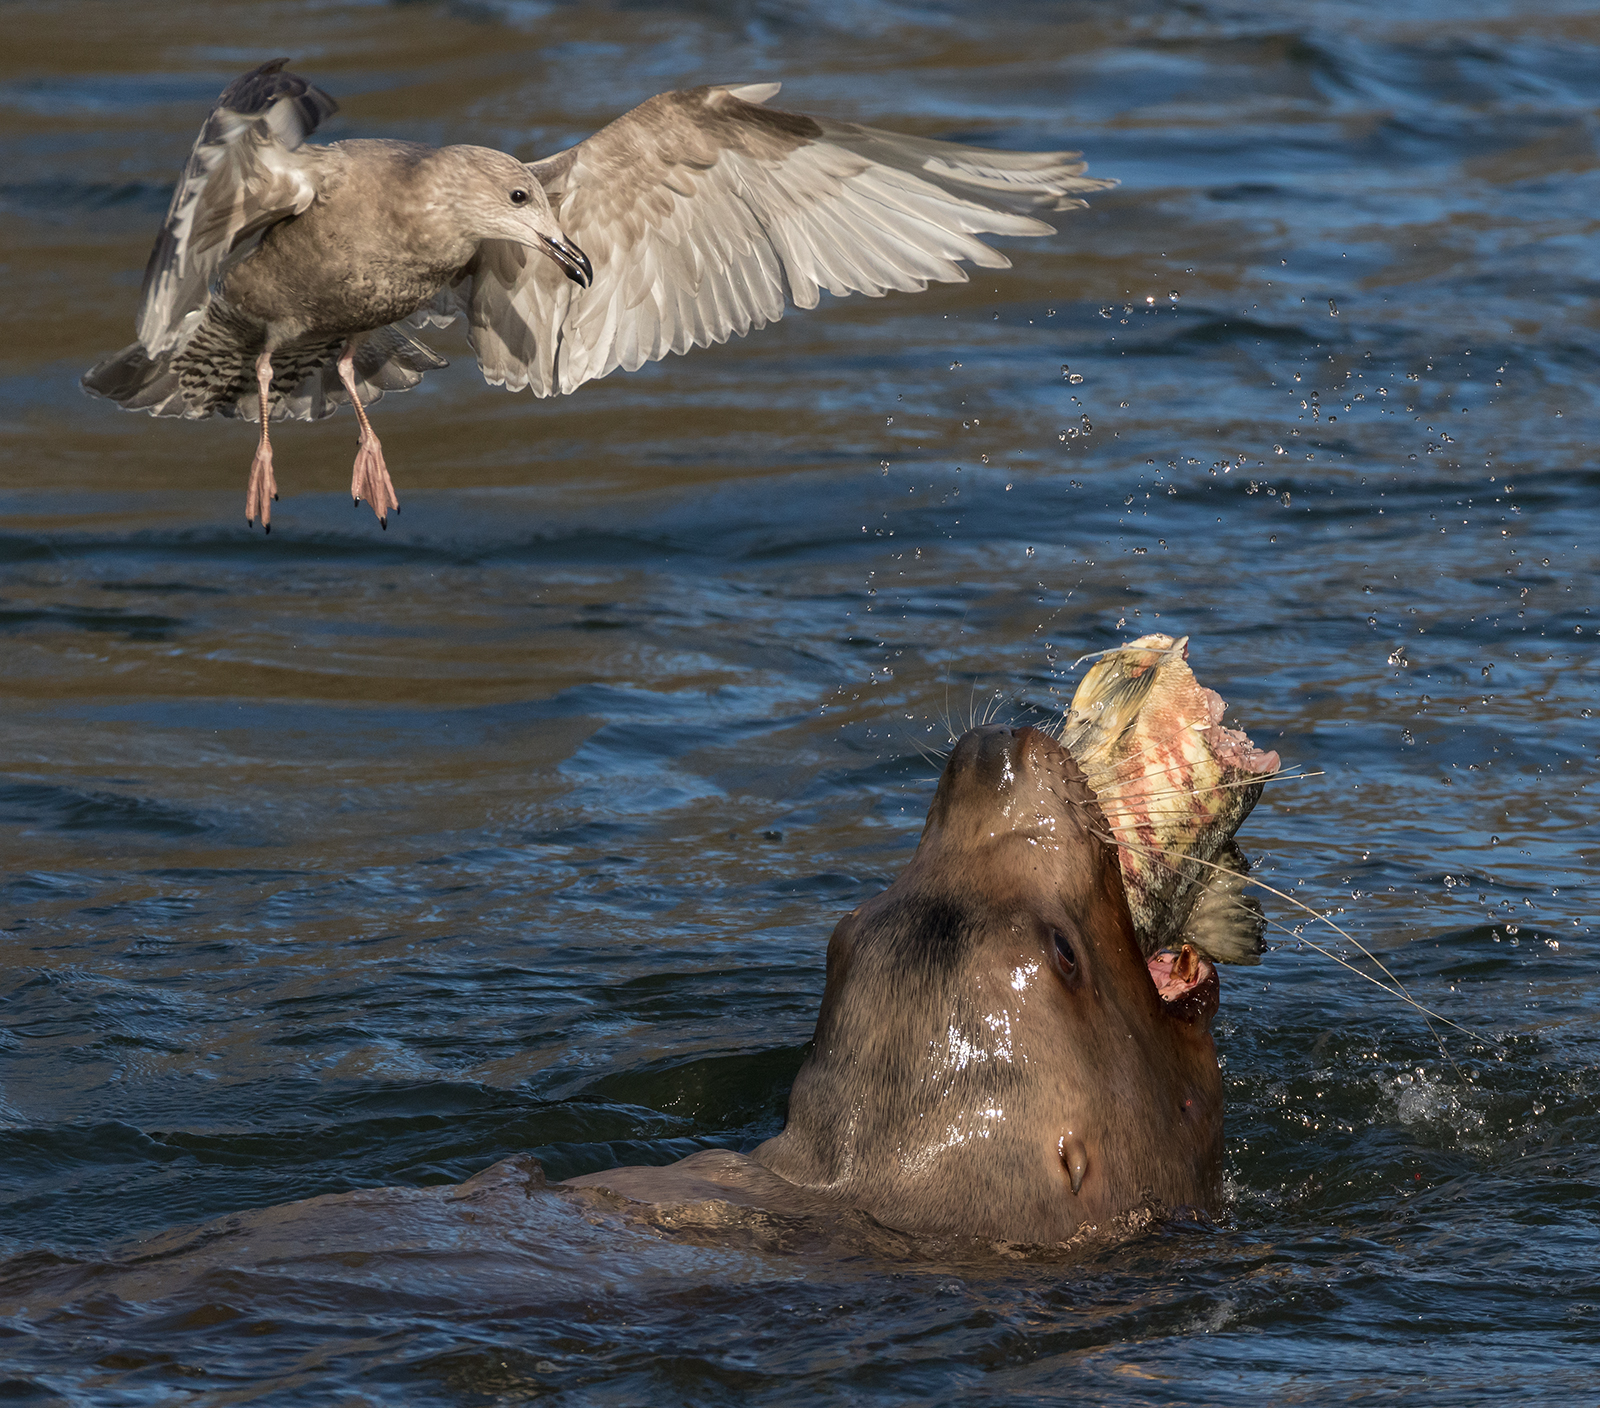 Sea Lion In The Cowichan River Feasting On Chum Salmon